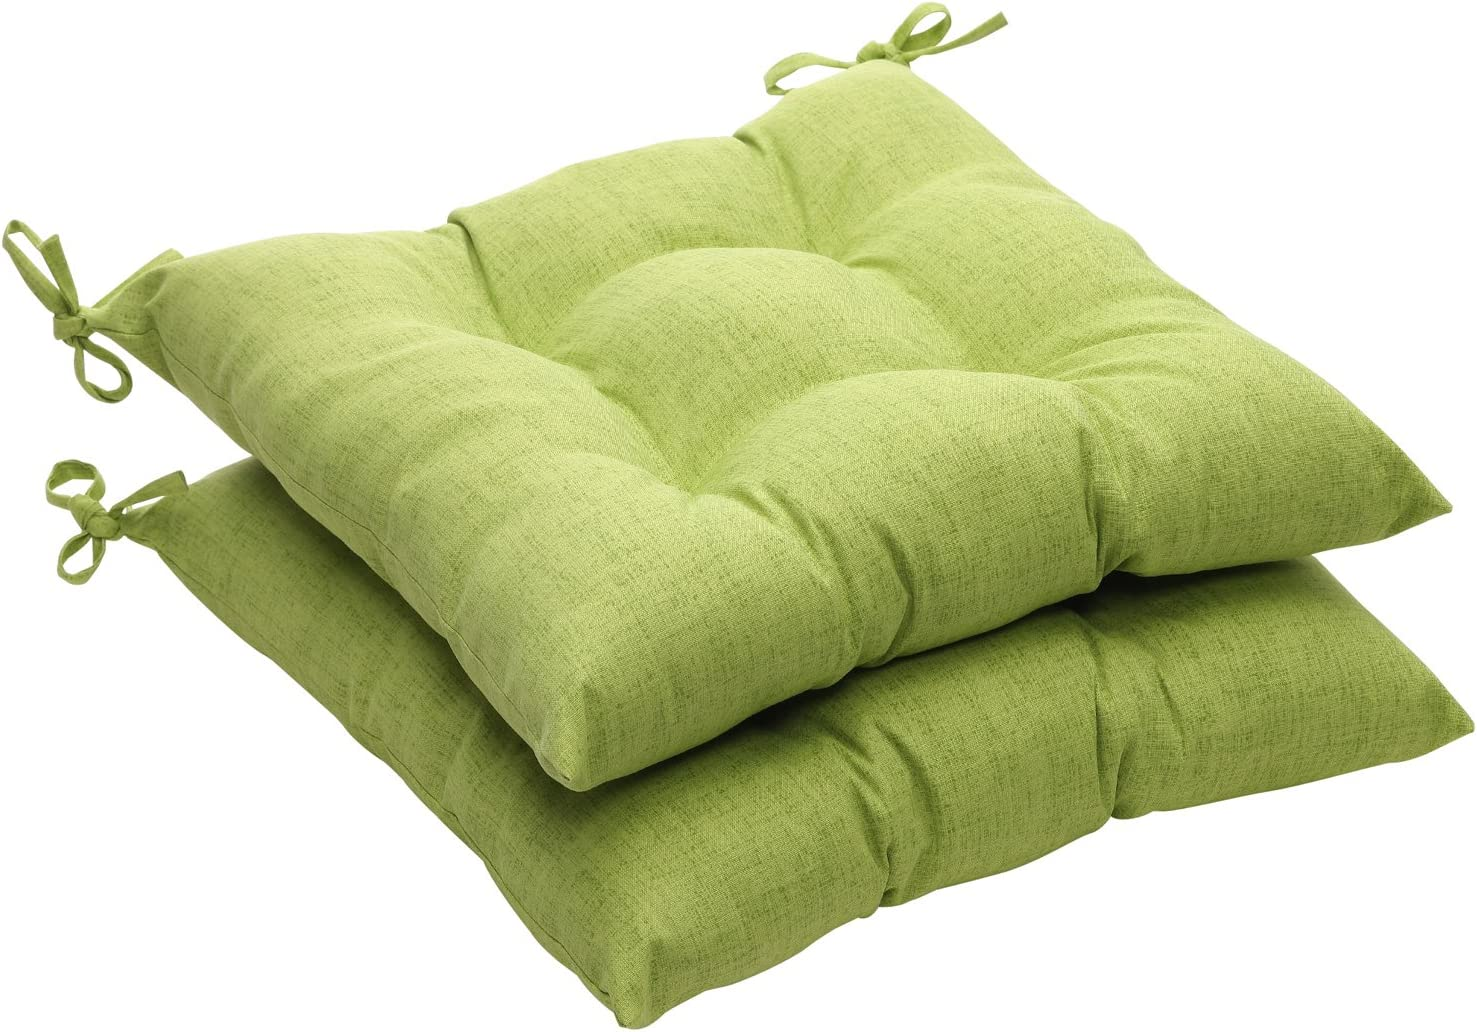 Pillow Perfect Indoor Outdoor Green Textured Solid Tufted Seat Cushion, 2-Pack